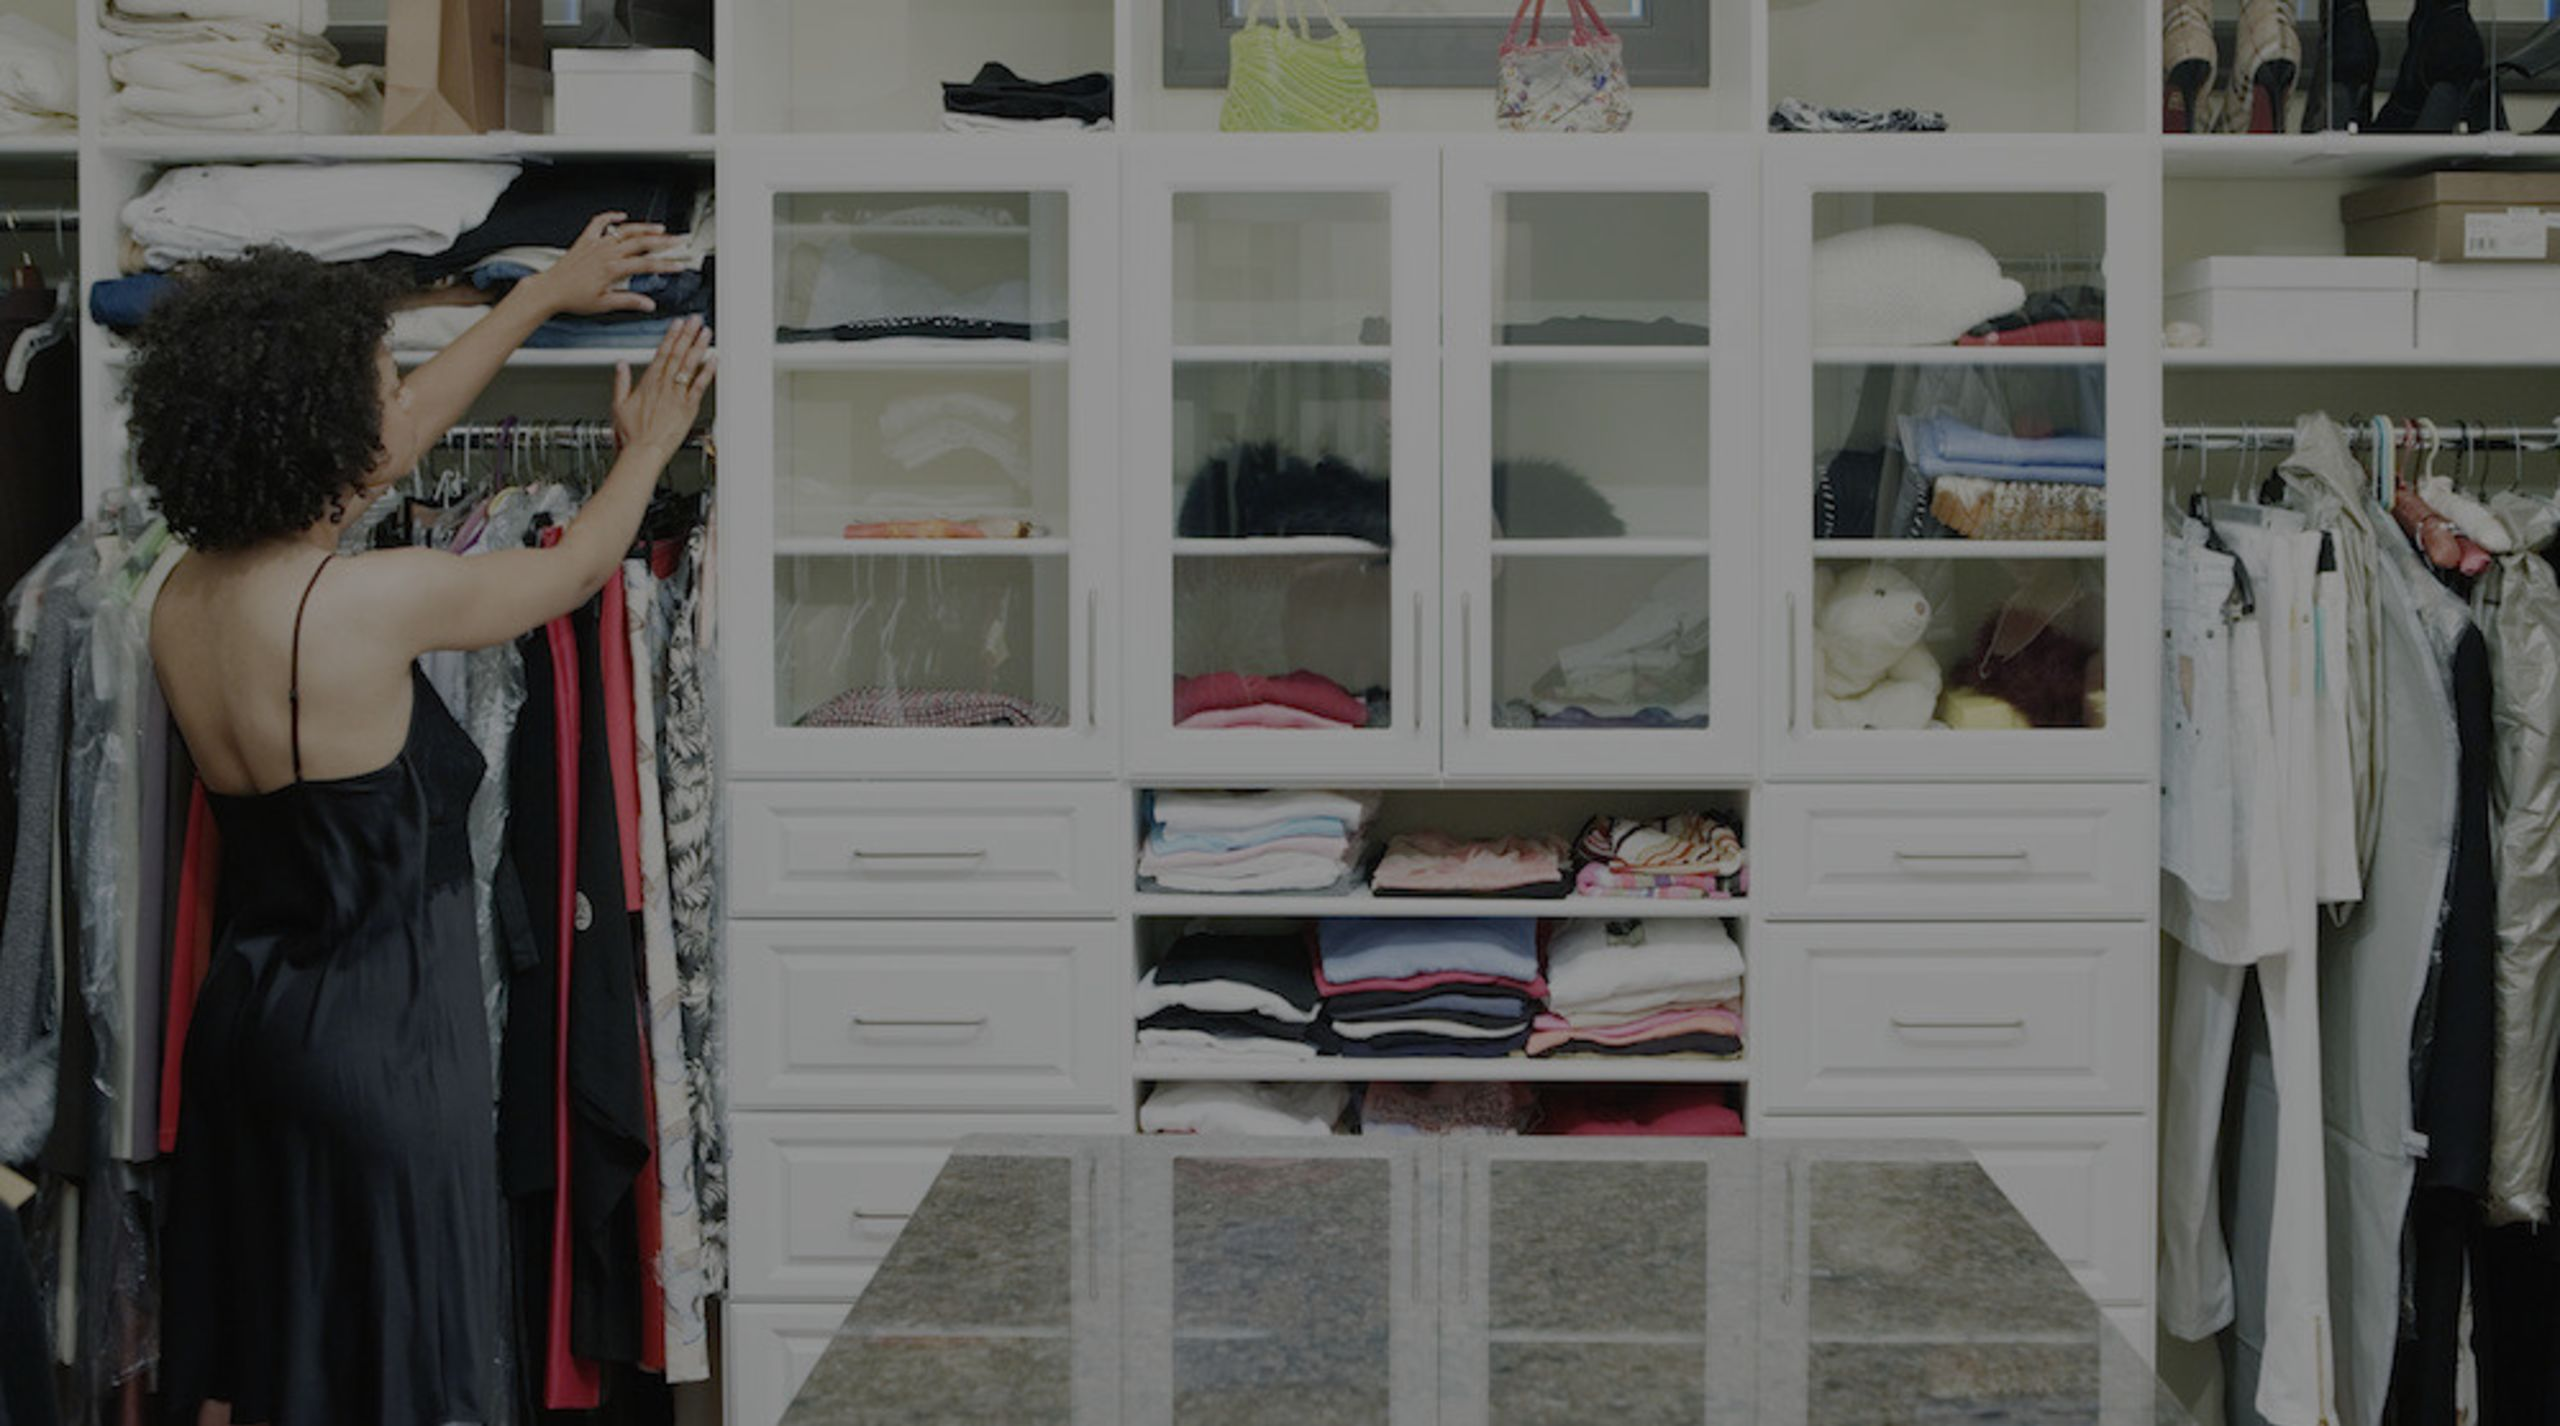 Spring Cleaning Your Closet? Here are Some Great Tips!